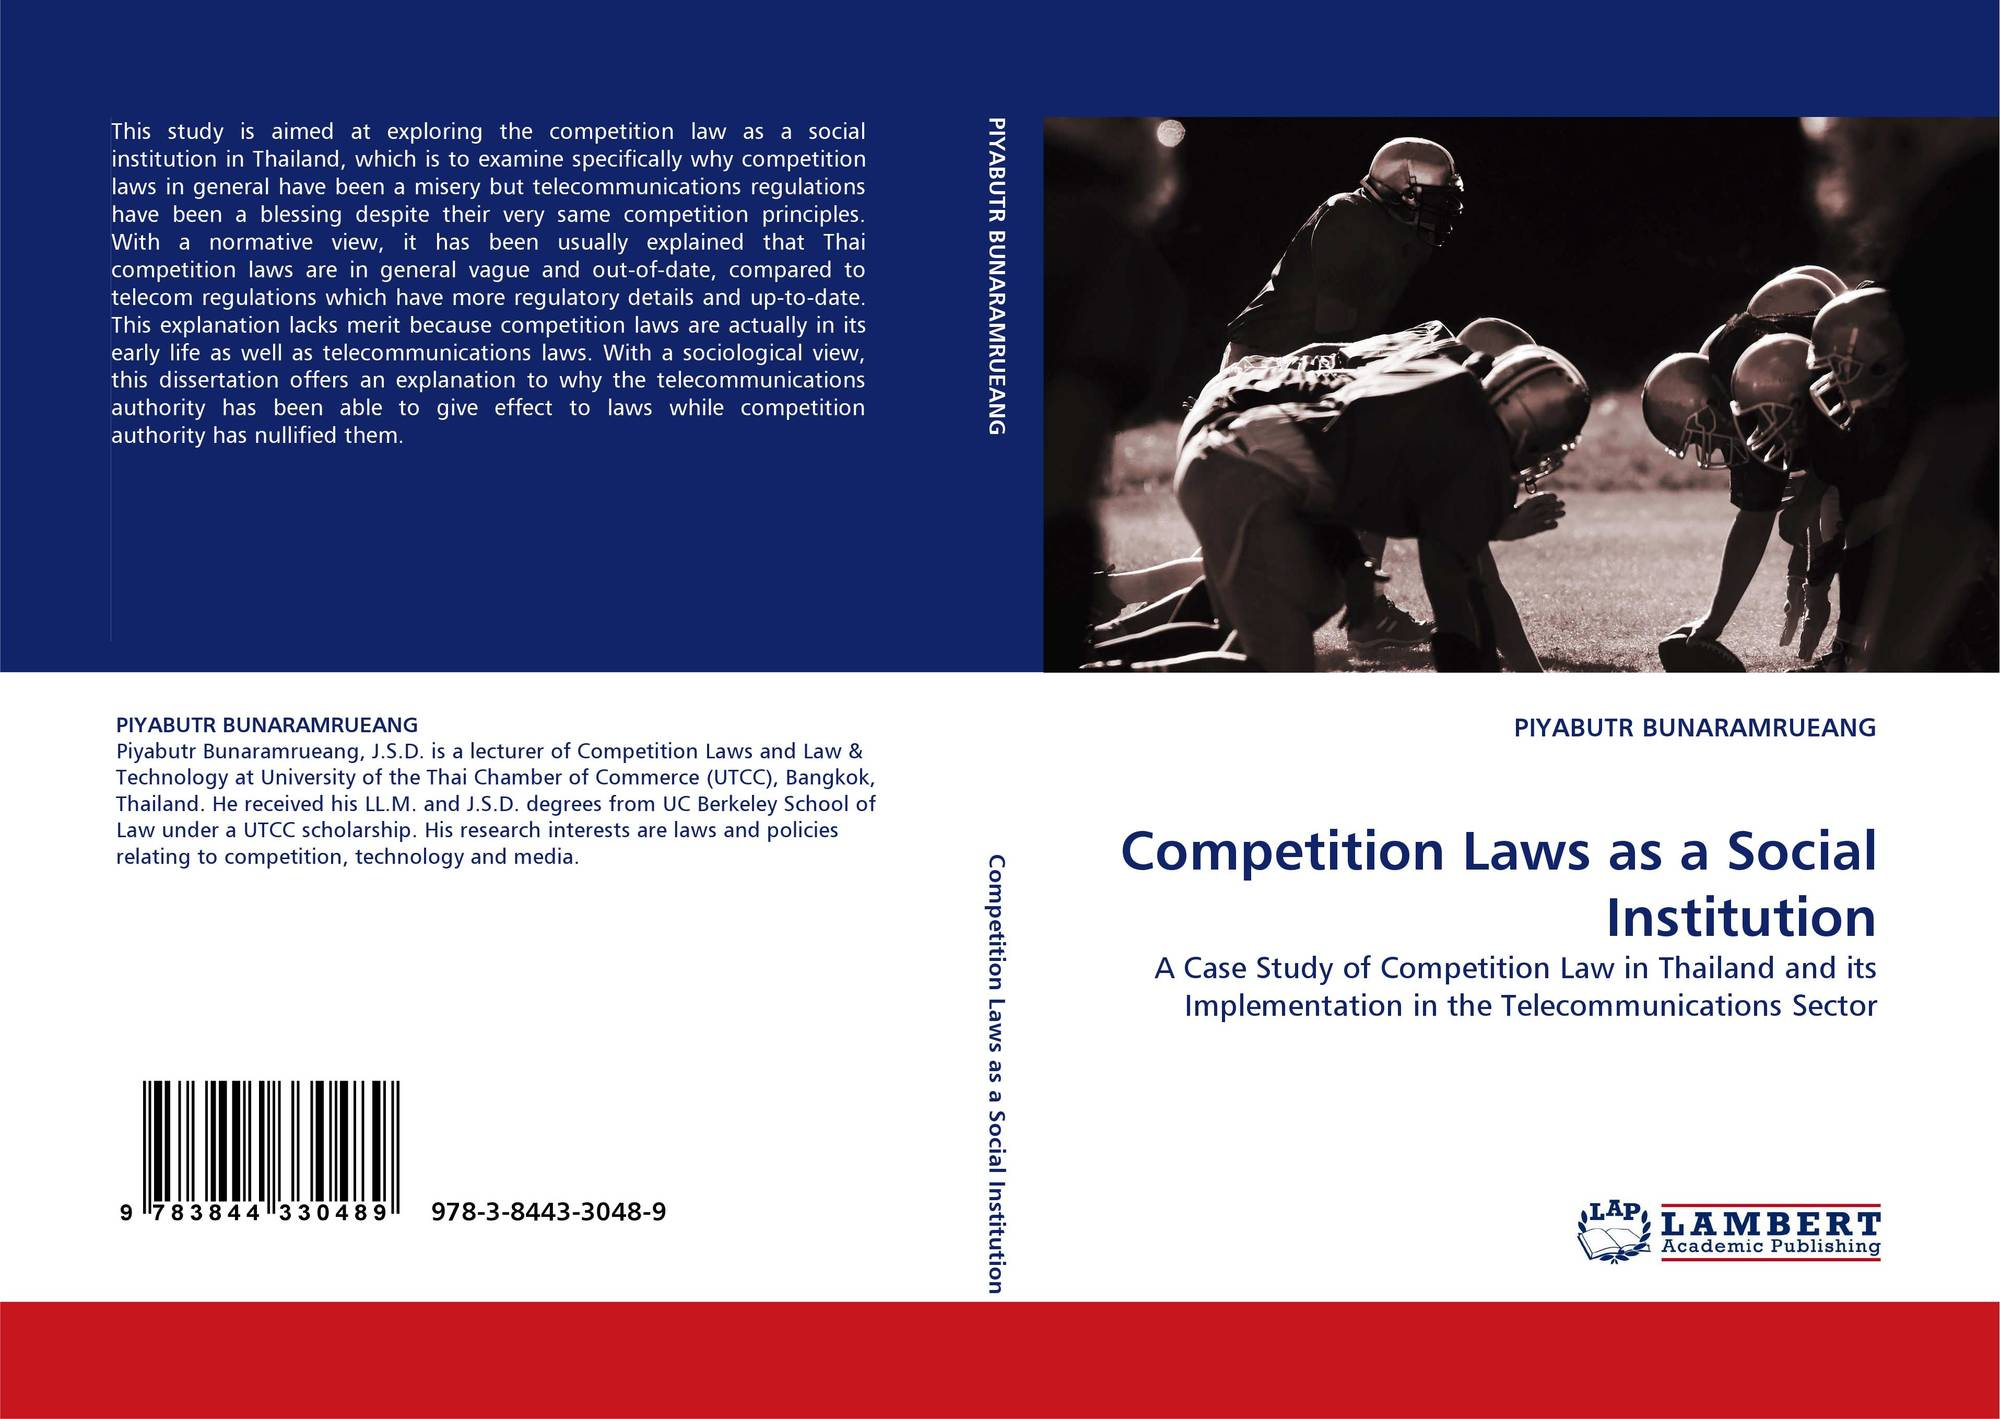 Competition Laws as a Social Institution, 978-3-8443-3048-9